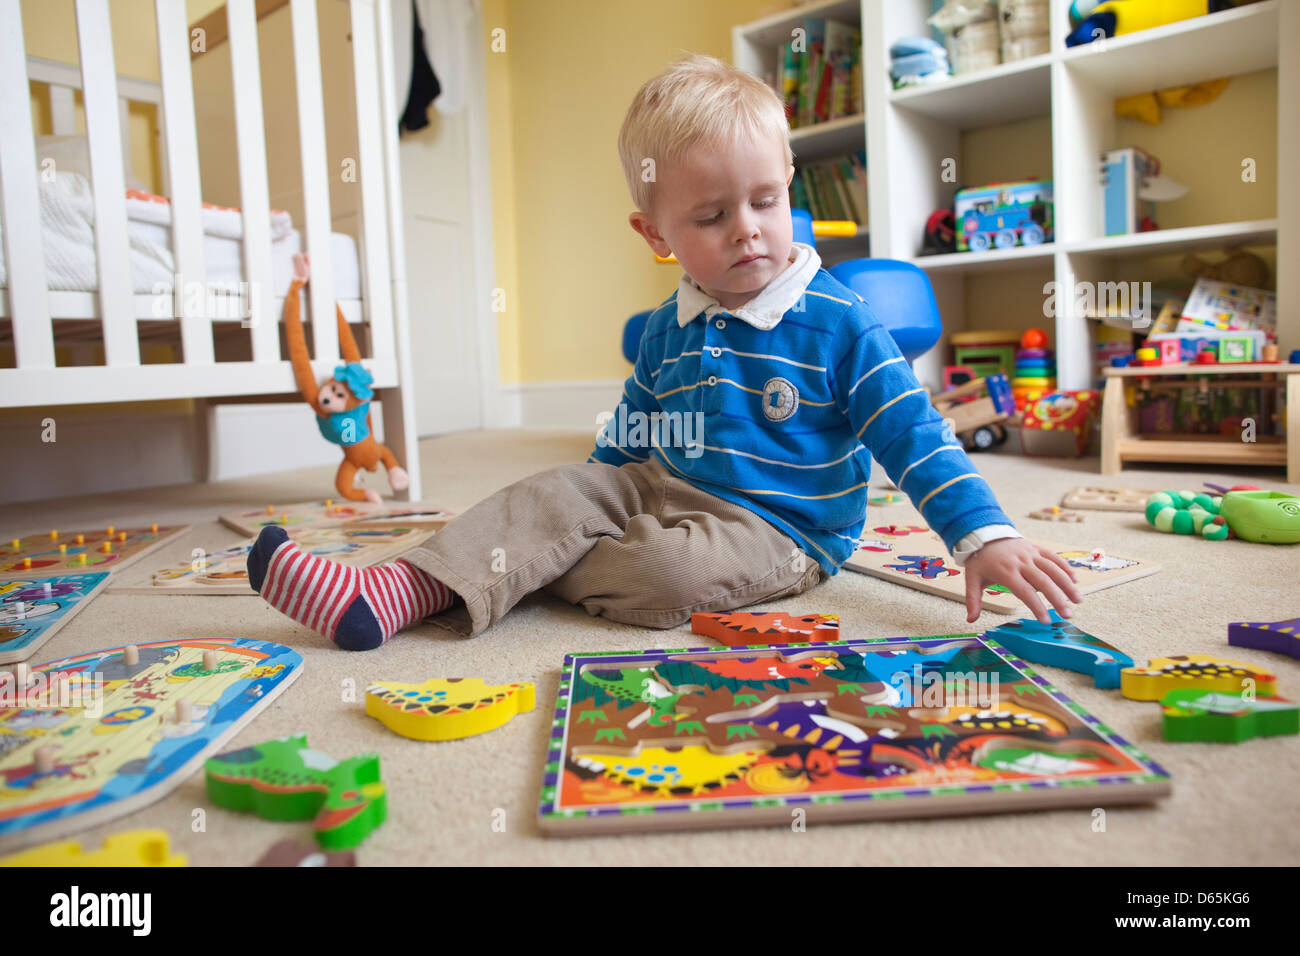 2 Year Old Boy Plays With Various Jigsaw Puzzles In His Bedroom Stock Photo